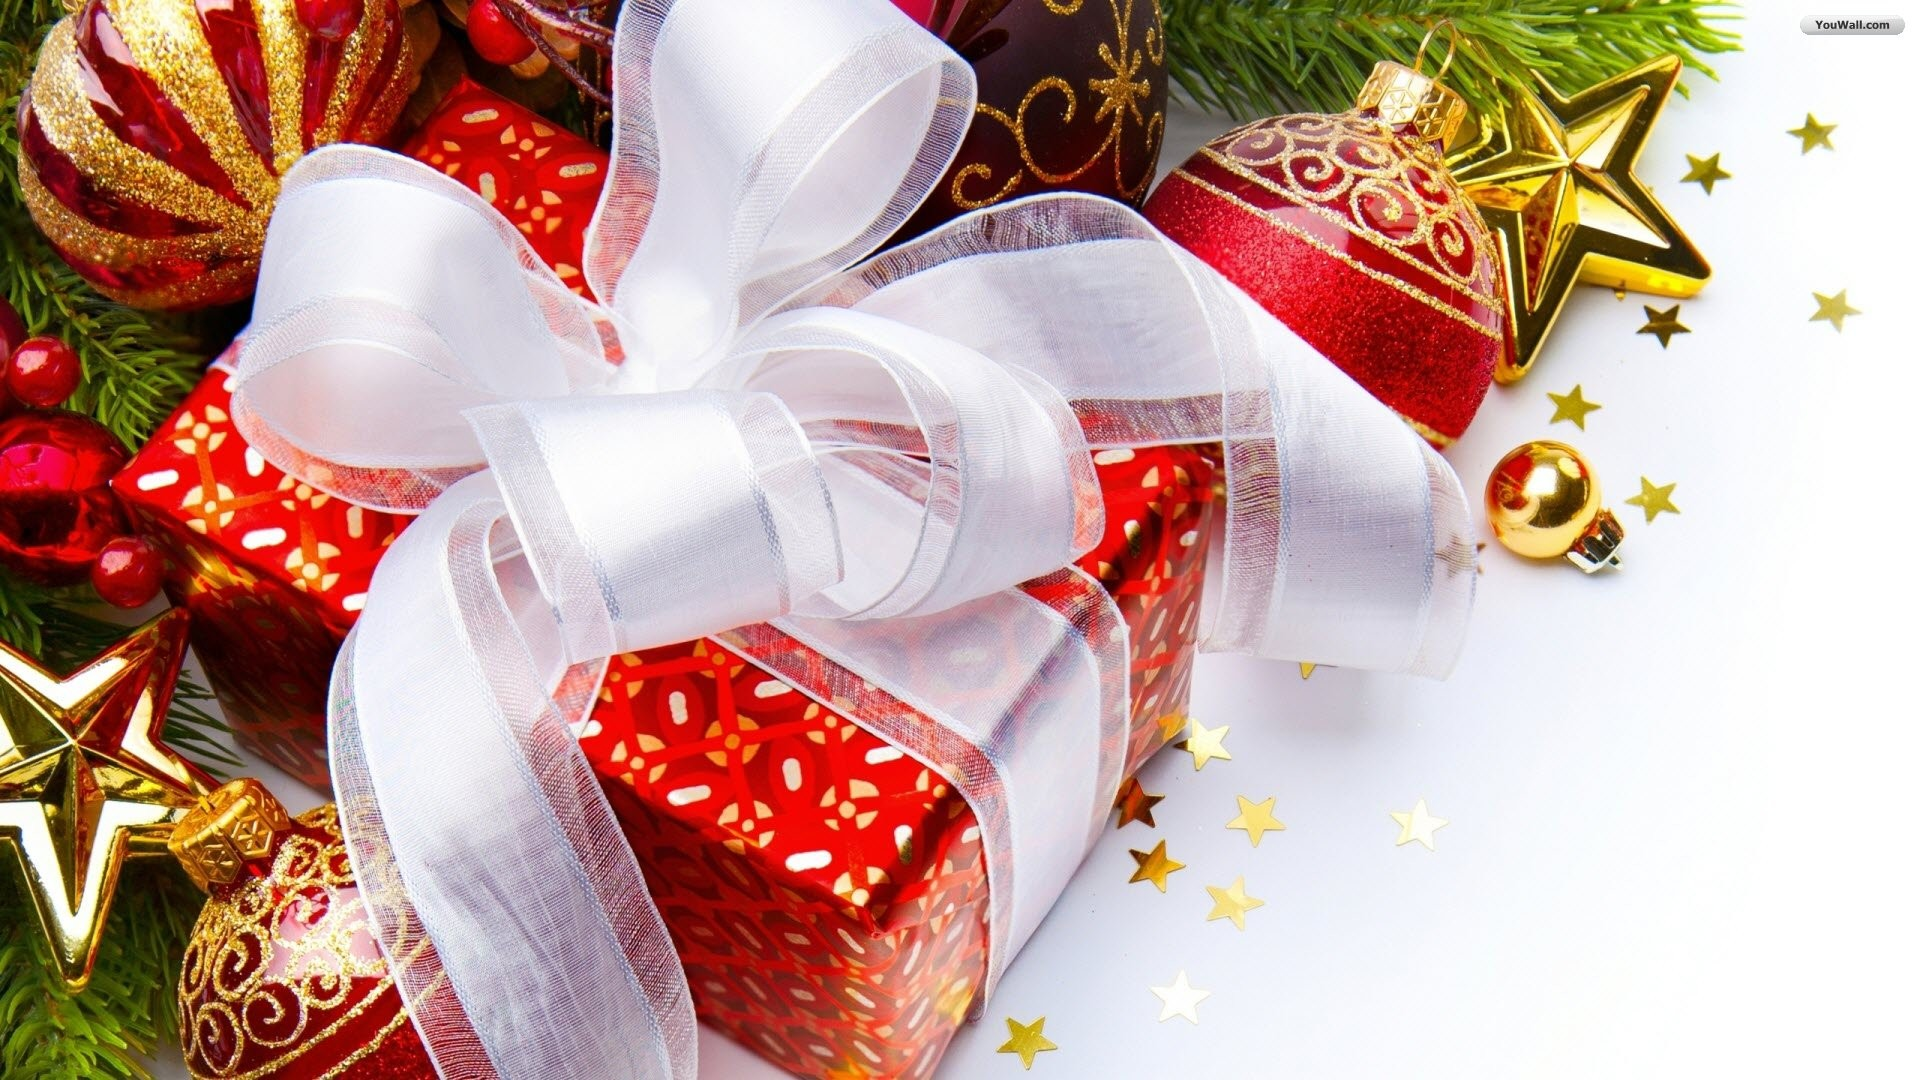 Res: 1920x1080, Christmas Gifts Wallpapers 4